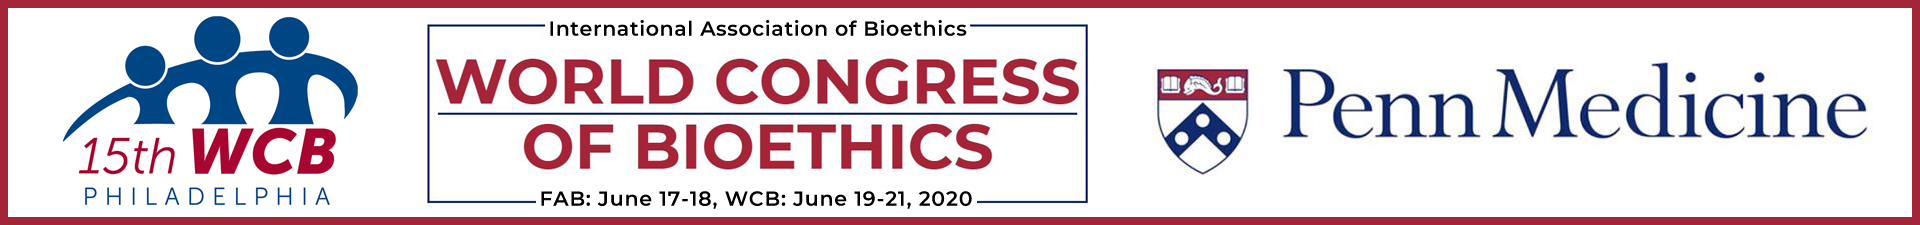 Feminist Approaches to Bioethics (FAB) <br>World Congress of Bioethics (WCB)</br> Event Banner